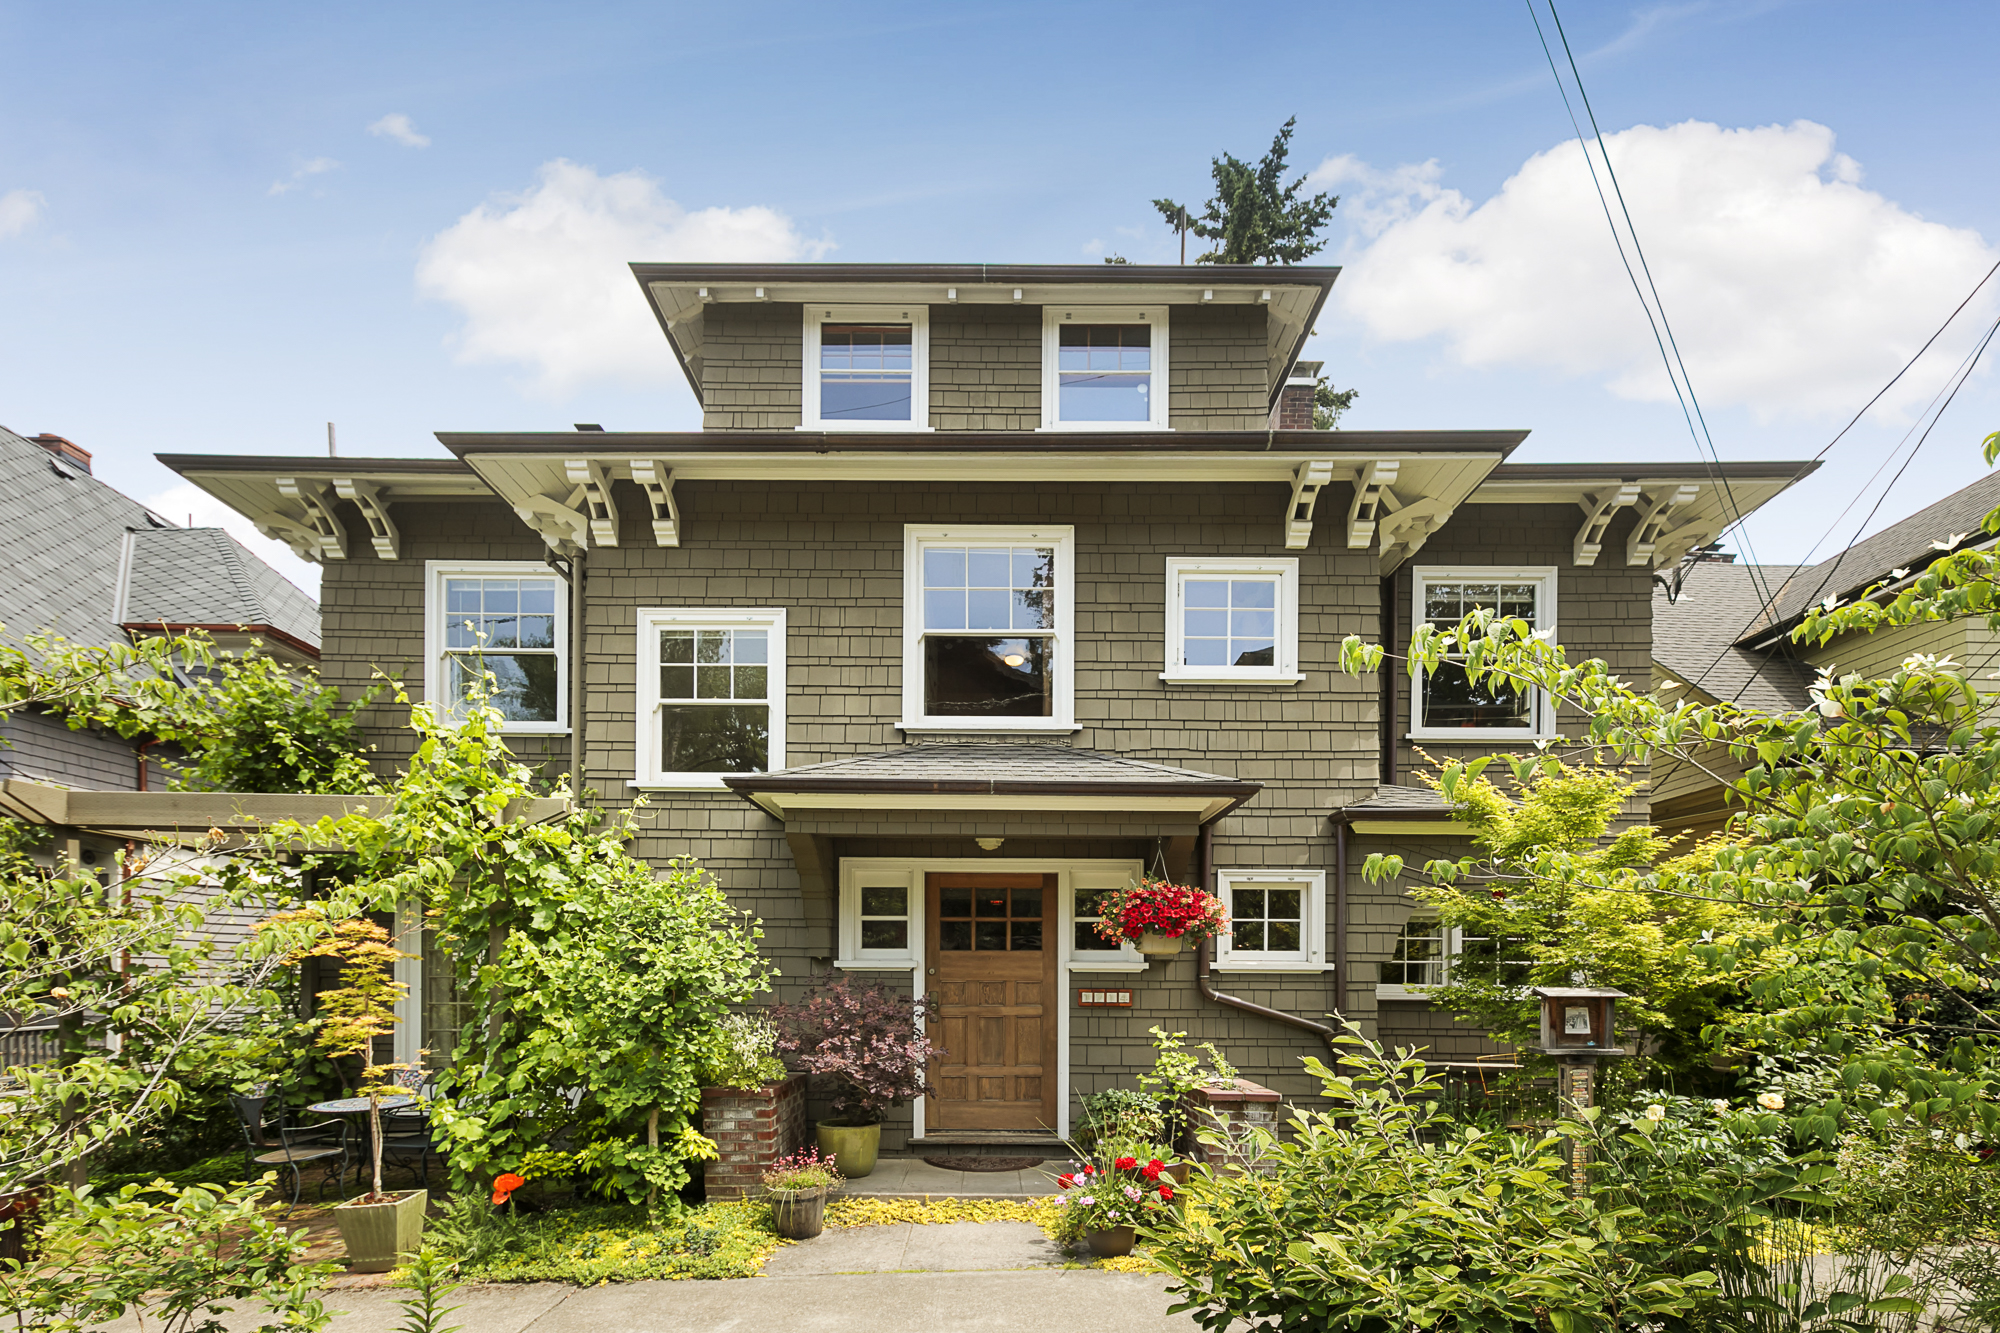 Willamette heights good enough for bill walton living room realty portland real estate for Living room realty portland or